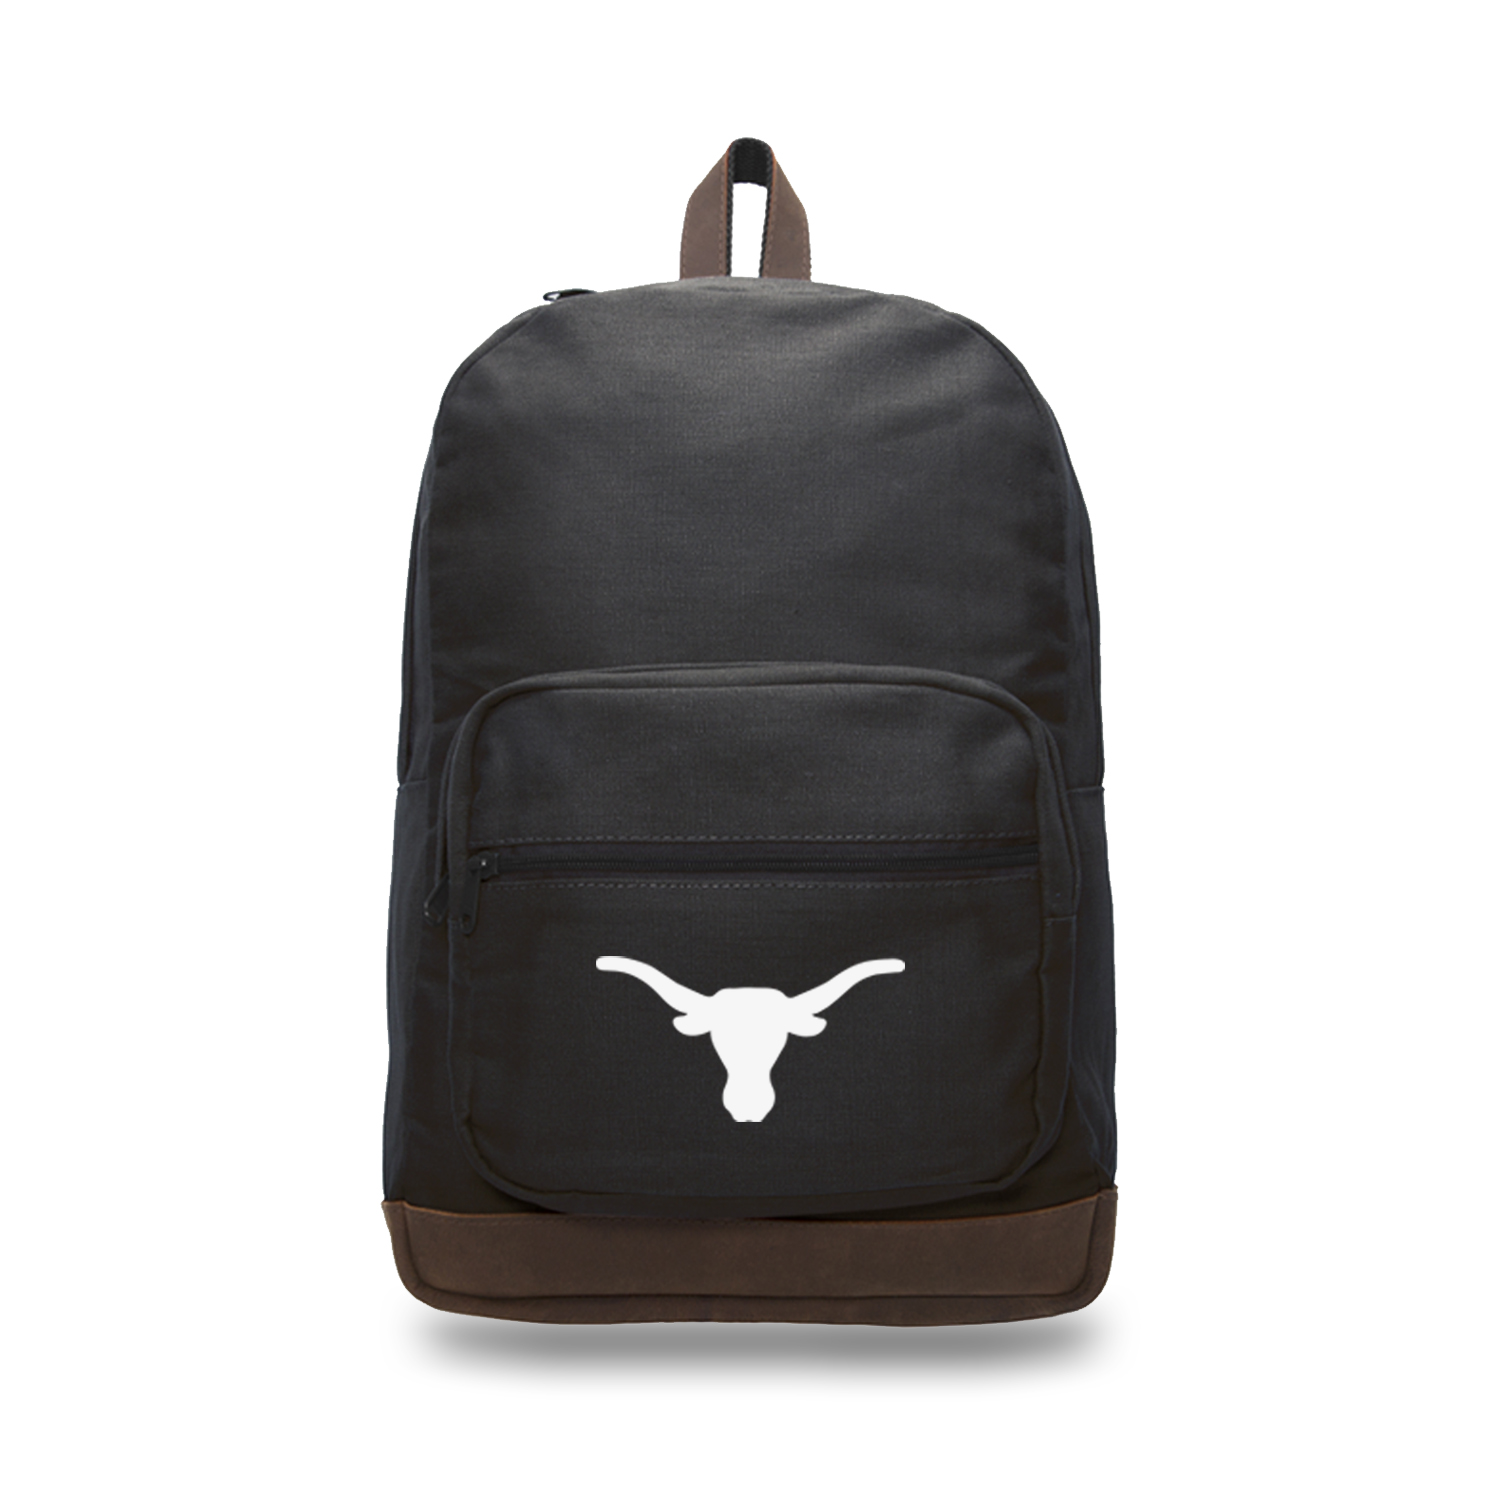 Texas Longhorns Canvas Leather University Laptop Backpack Best